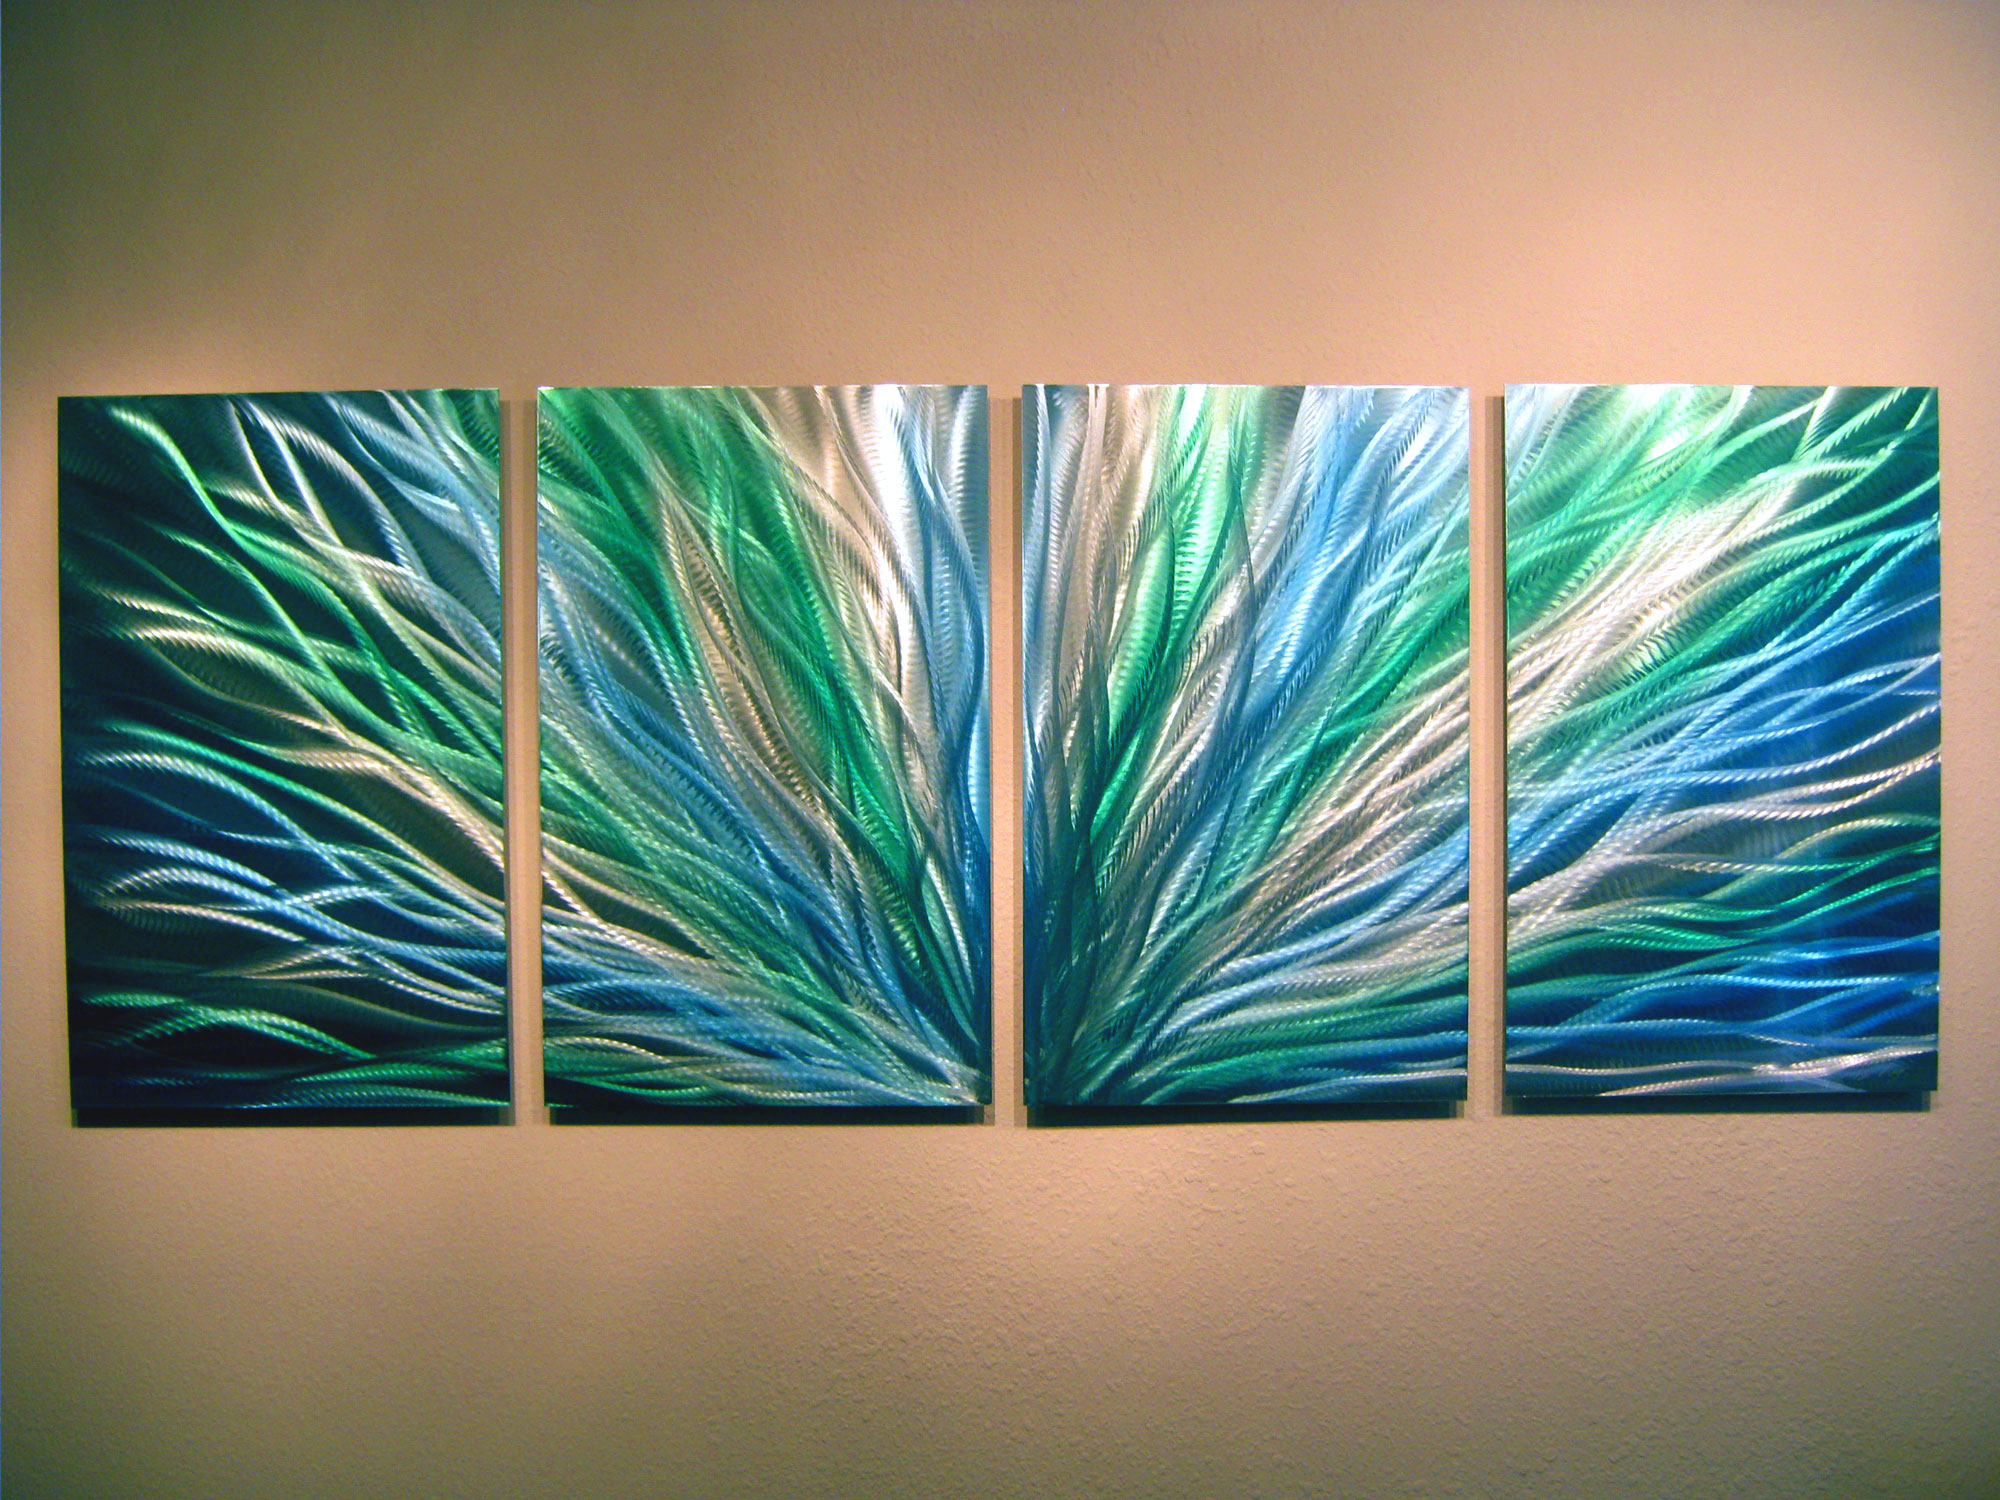 Radiance blue green abstract metal wall art contemporary modern decor thumbnail 2